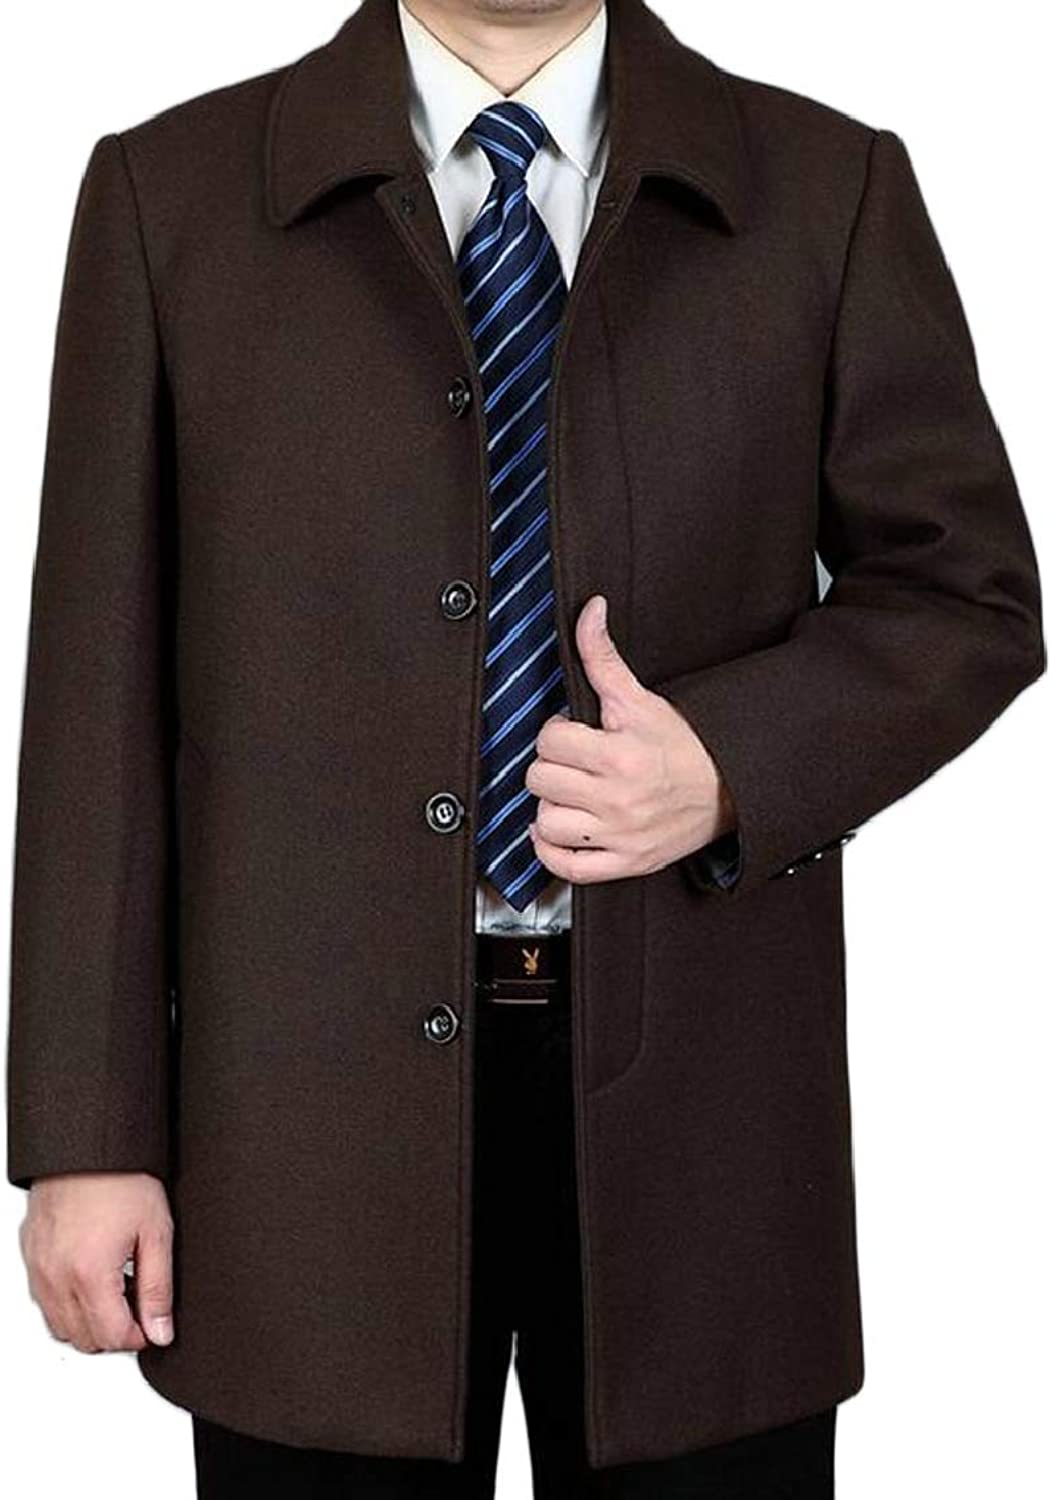 TD-CACA Men's Classical Bussiness Style Fashion Single Breasted Wool Coat Outwear